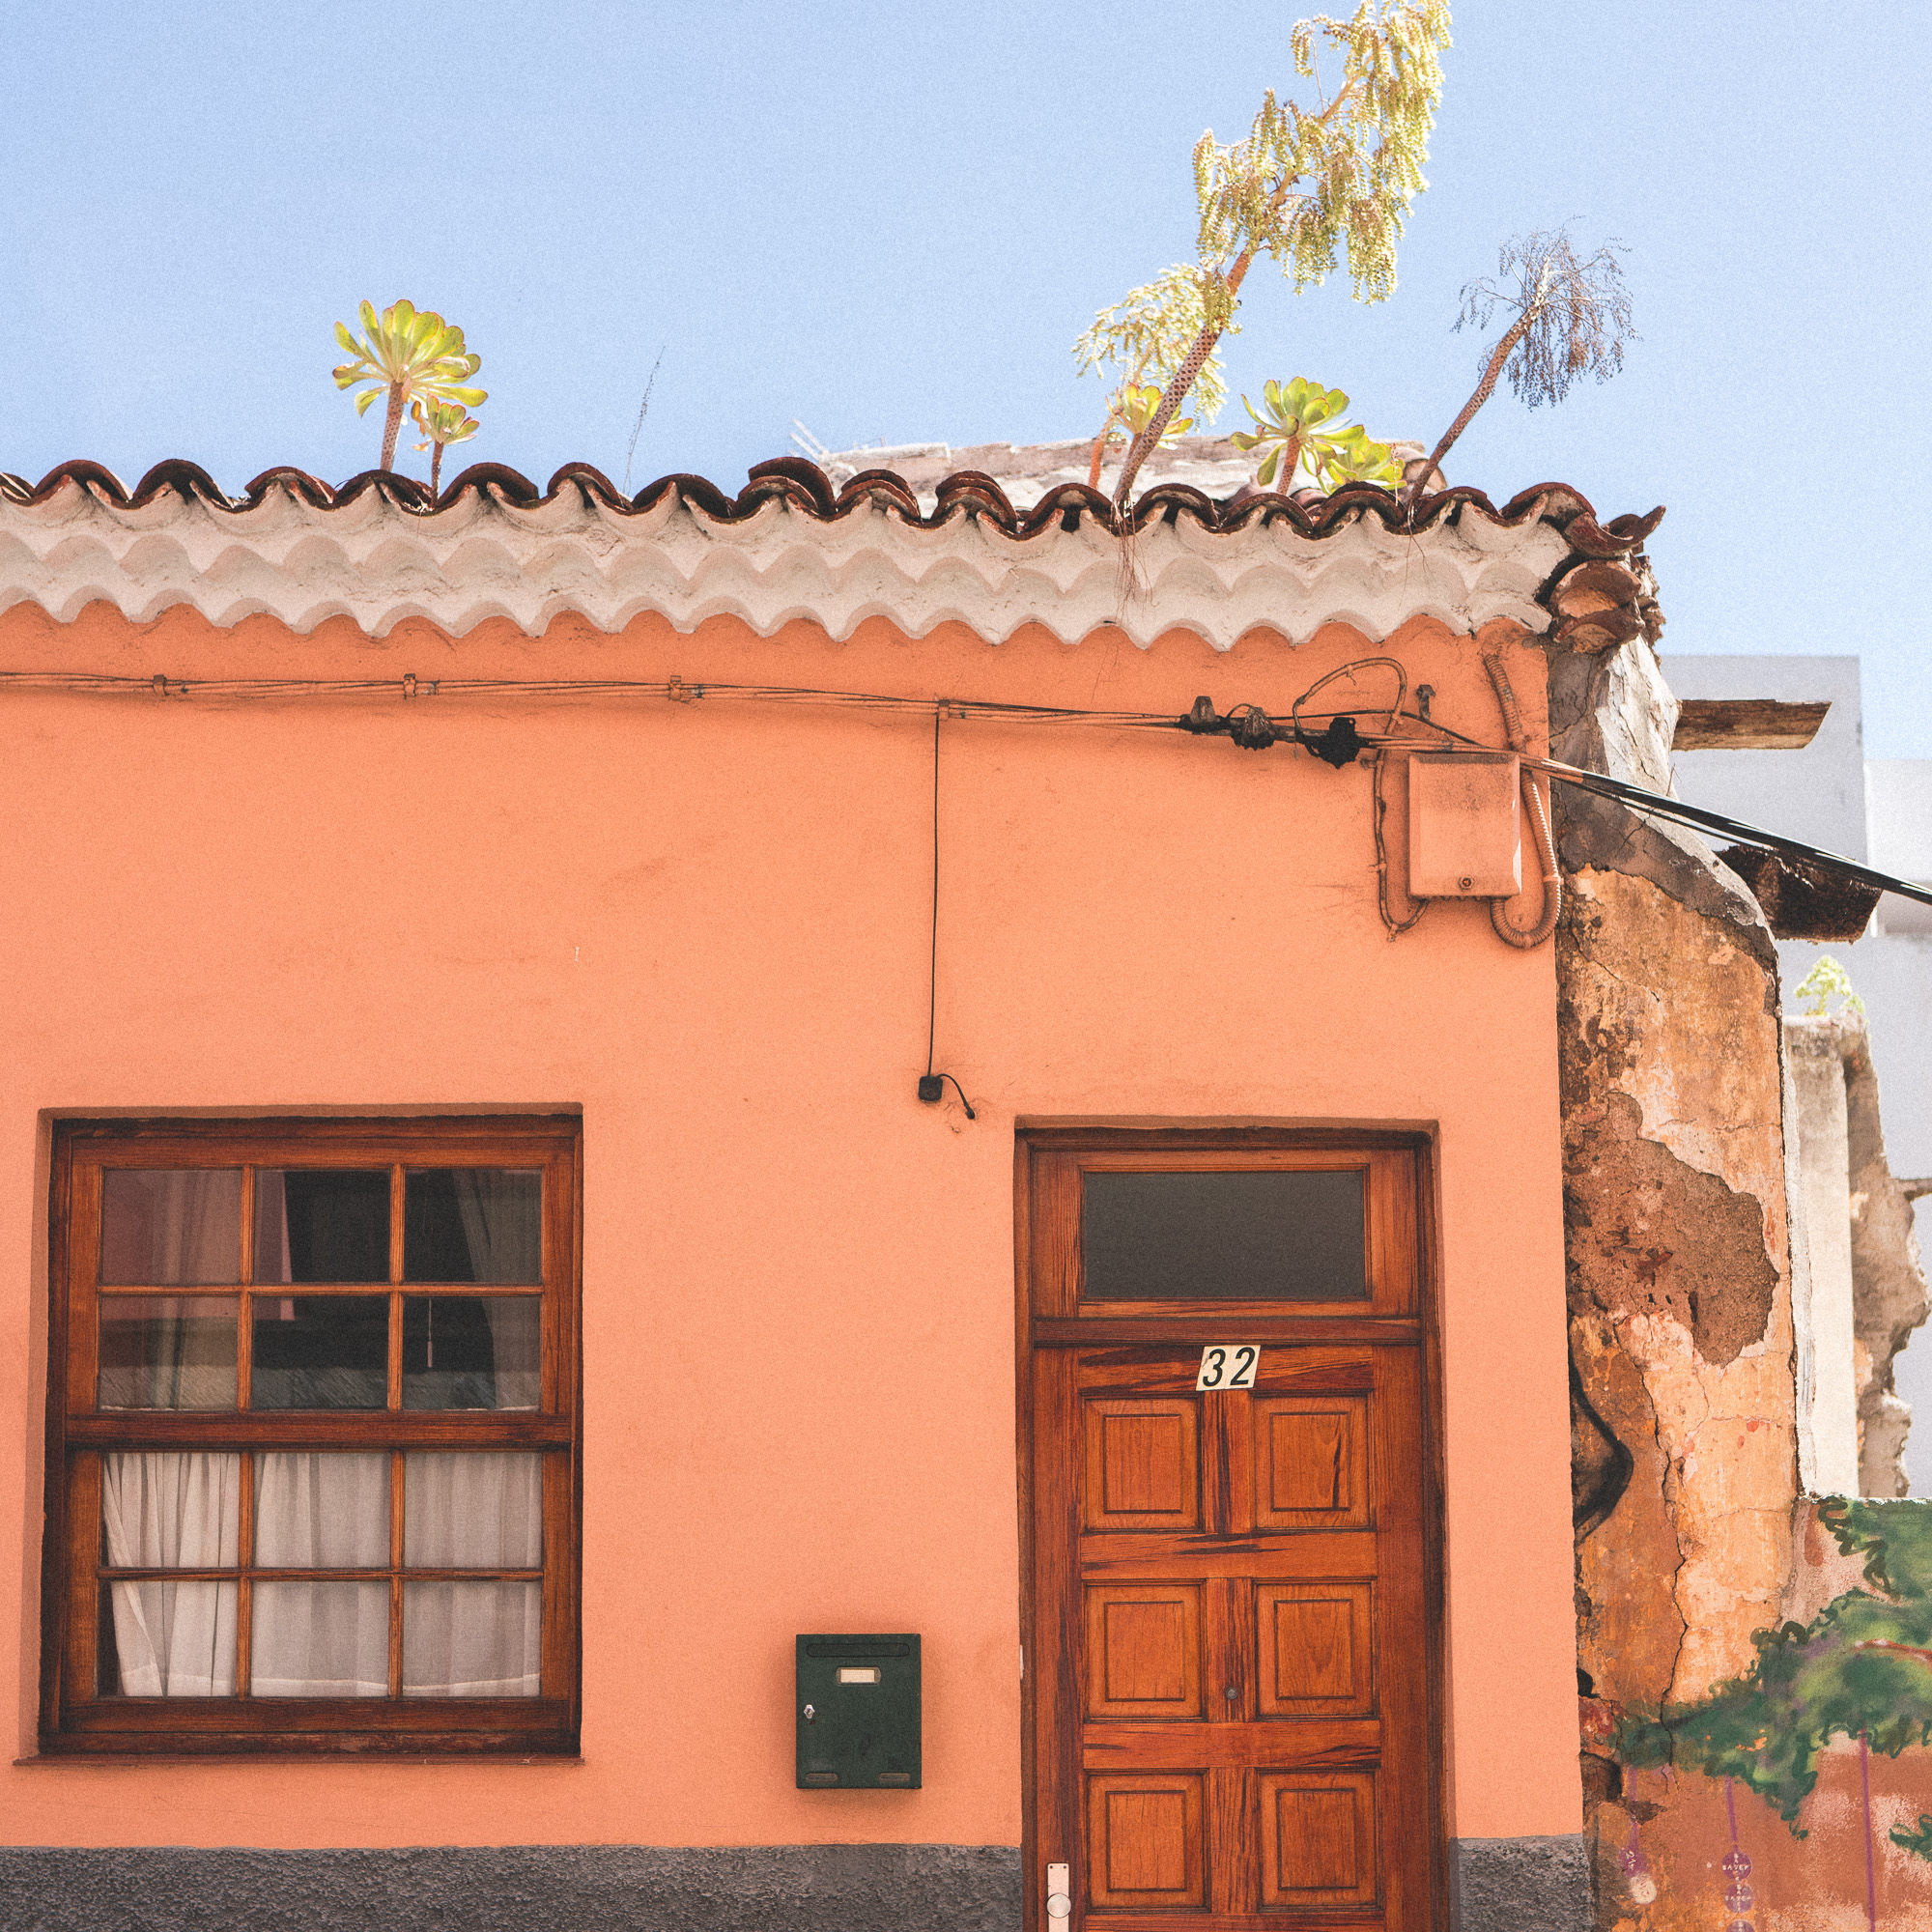 Historic Town San Cristobal De La Laguna in Tenerife, Canary Islands, Spain